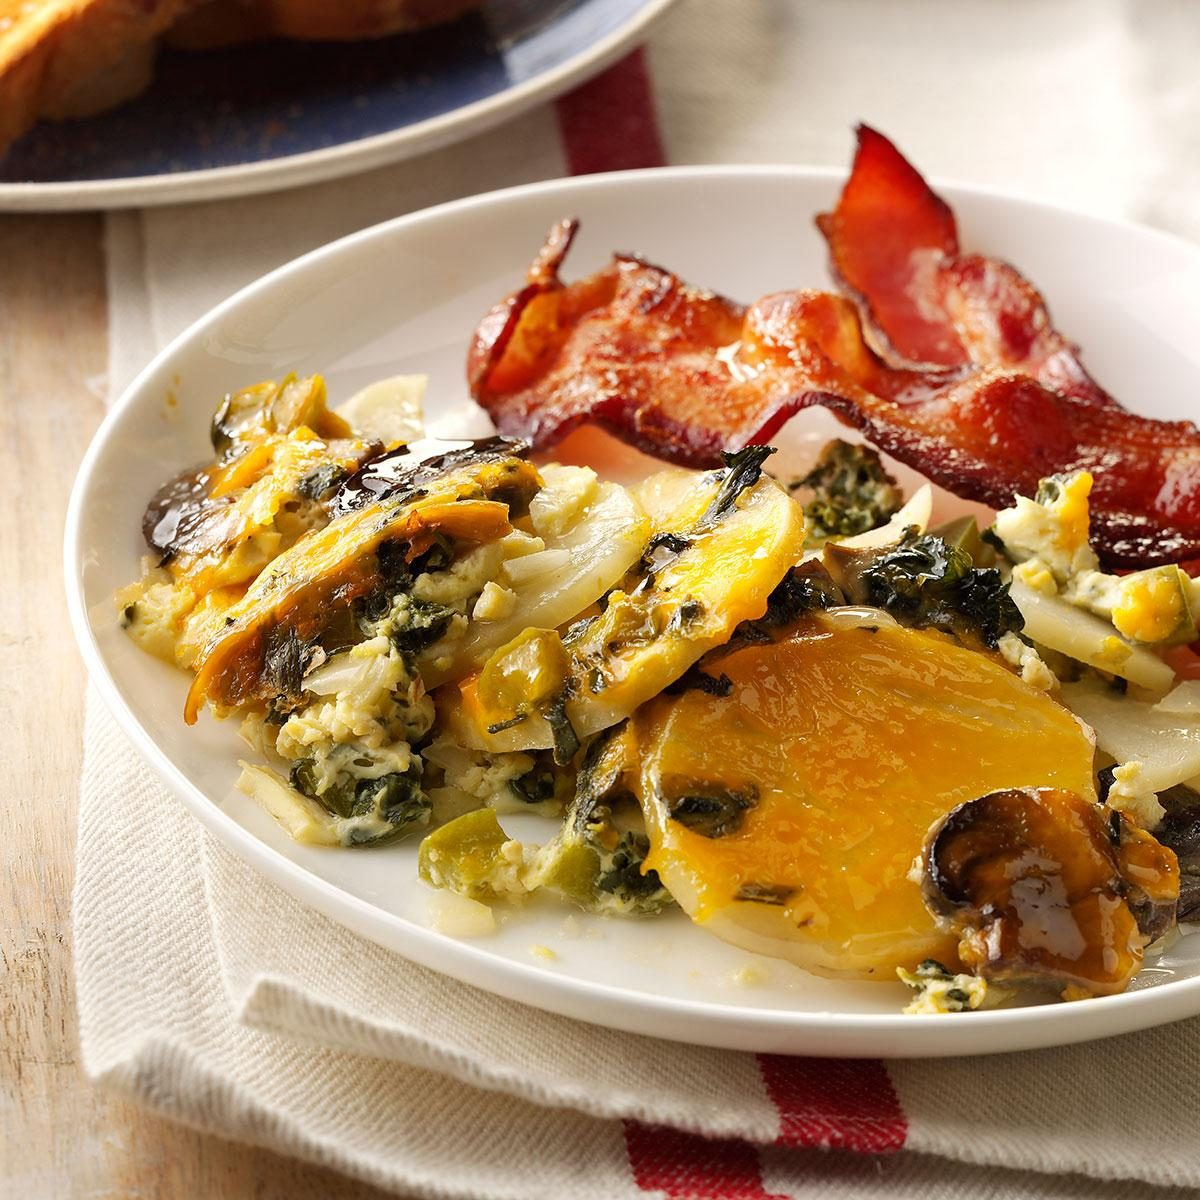 Slow Cooker Breakfast Recipes: 26 Slow Cooker Brunch Recipes To Make On Black Friday